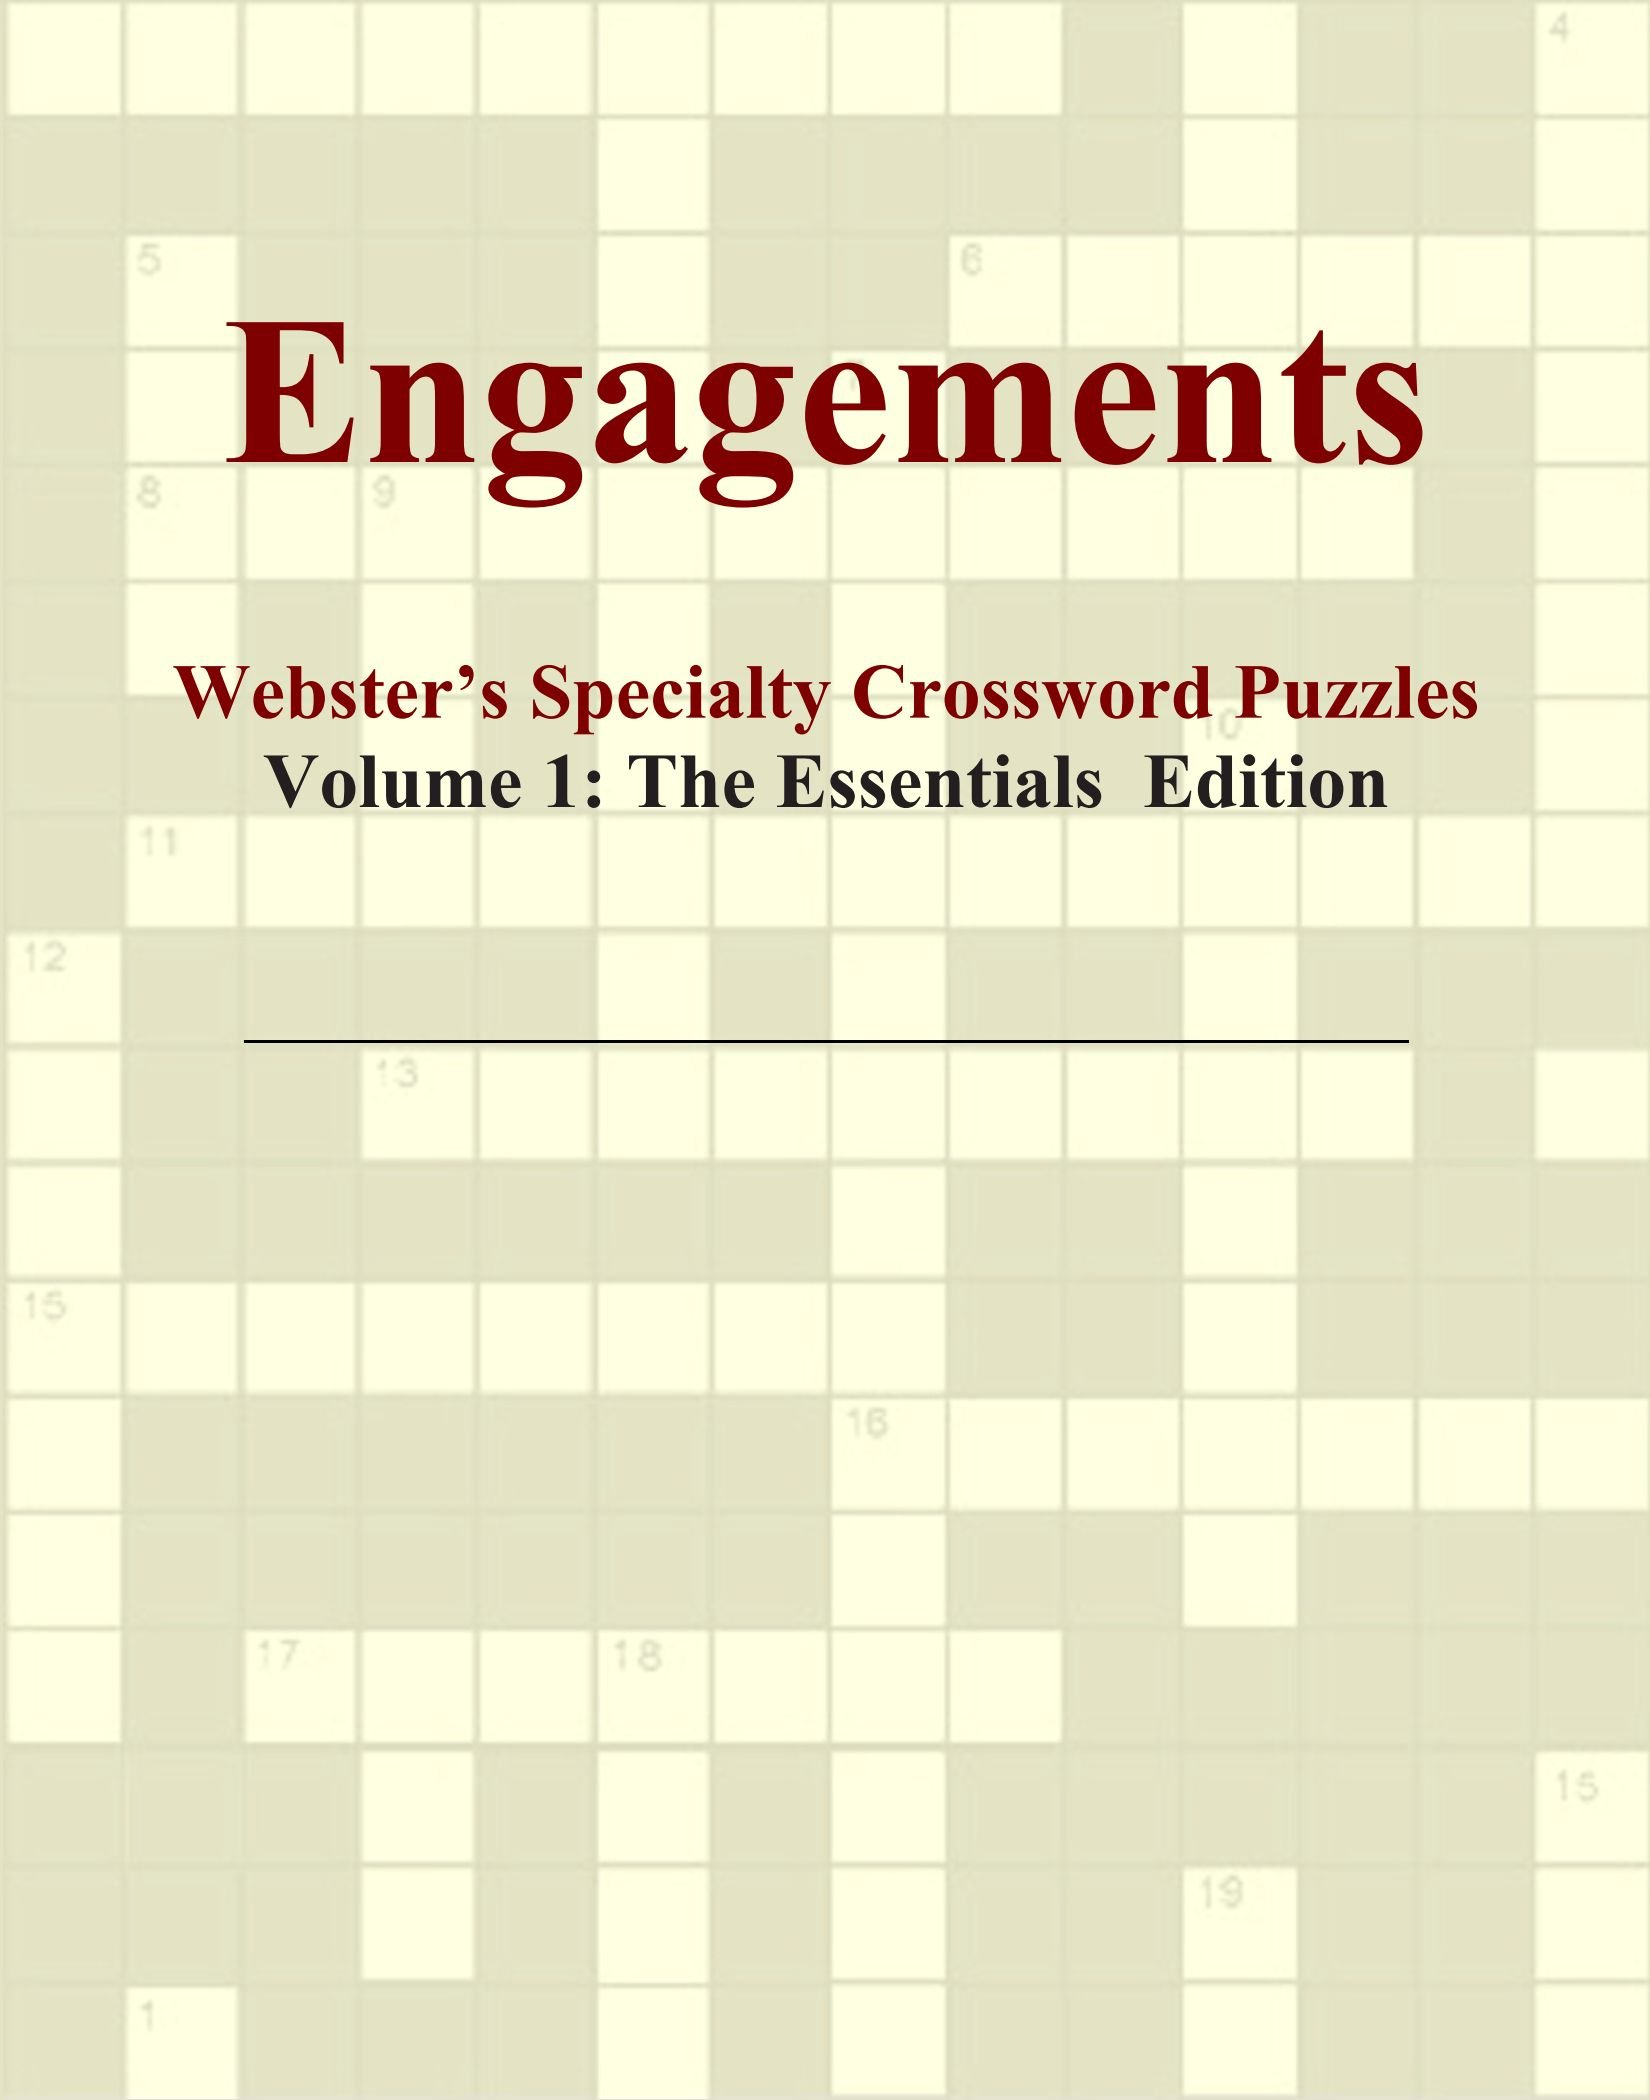 Read Online Engagements - Webster's Specialty Crossword Puzzles, Volume 1: The Essentials Edition PDF